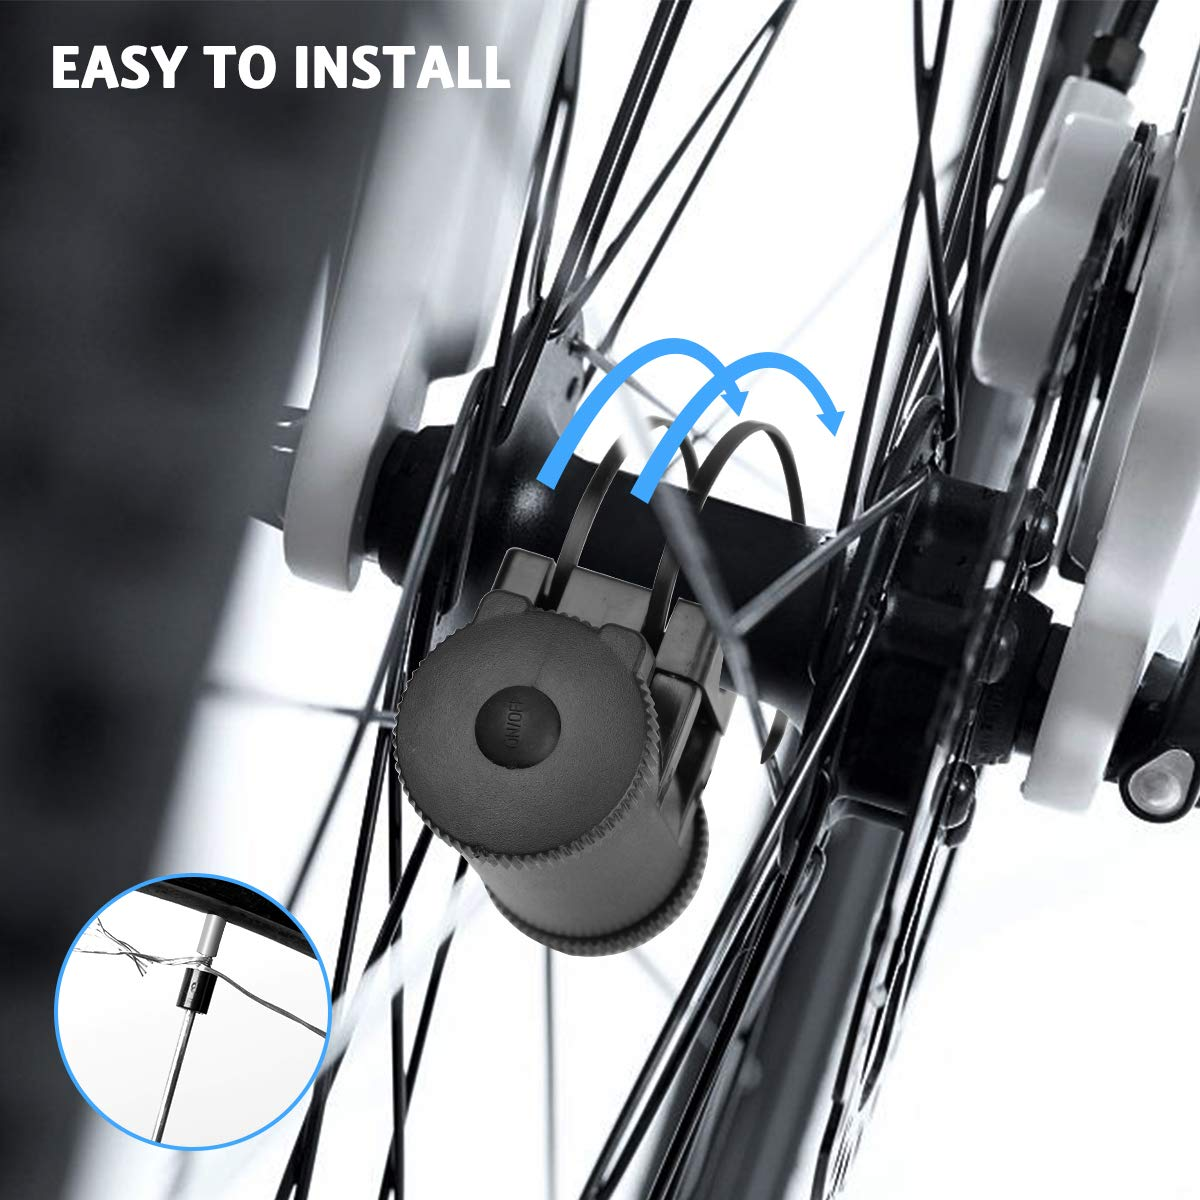 AOYOO Bicycle Wheel Light Night Light (1 Tire Pack) Waterproof 7 Color Outdoor Lighting Bicycle Tire Accessories You Can Choose Your Favorite Color 18 Flash Pattern Personality Selection, Safety Spoke by AOYOO (Image #3)